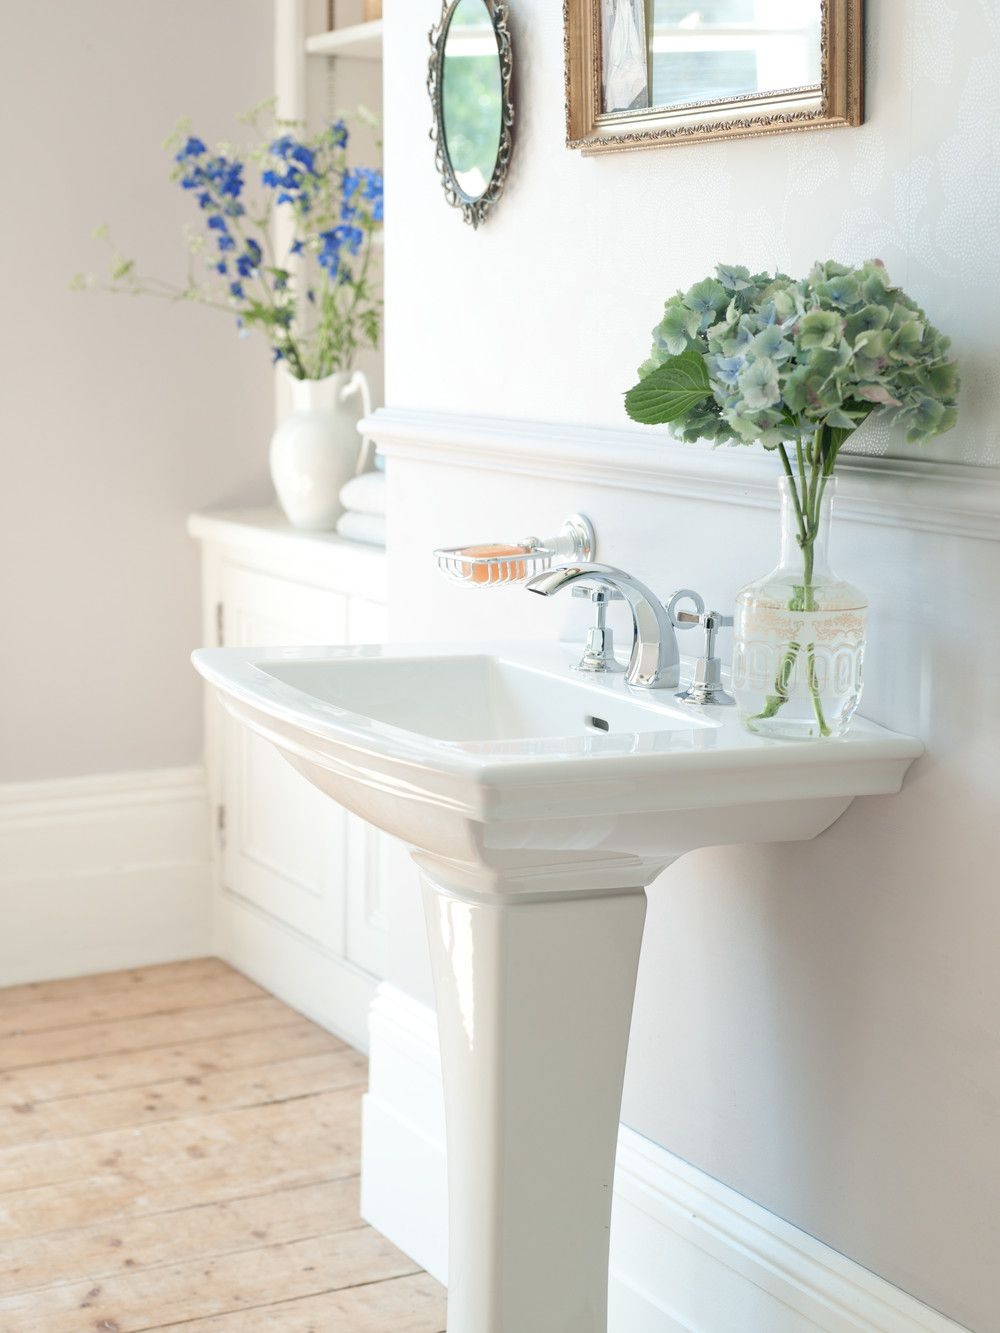 flovers to everywhere | dream home | Pinterest | Basin, Taps and ...